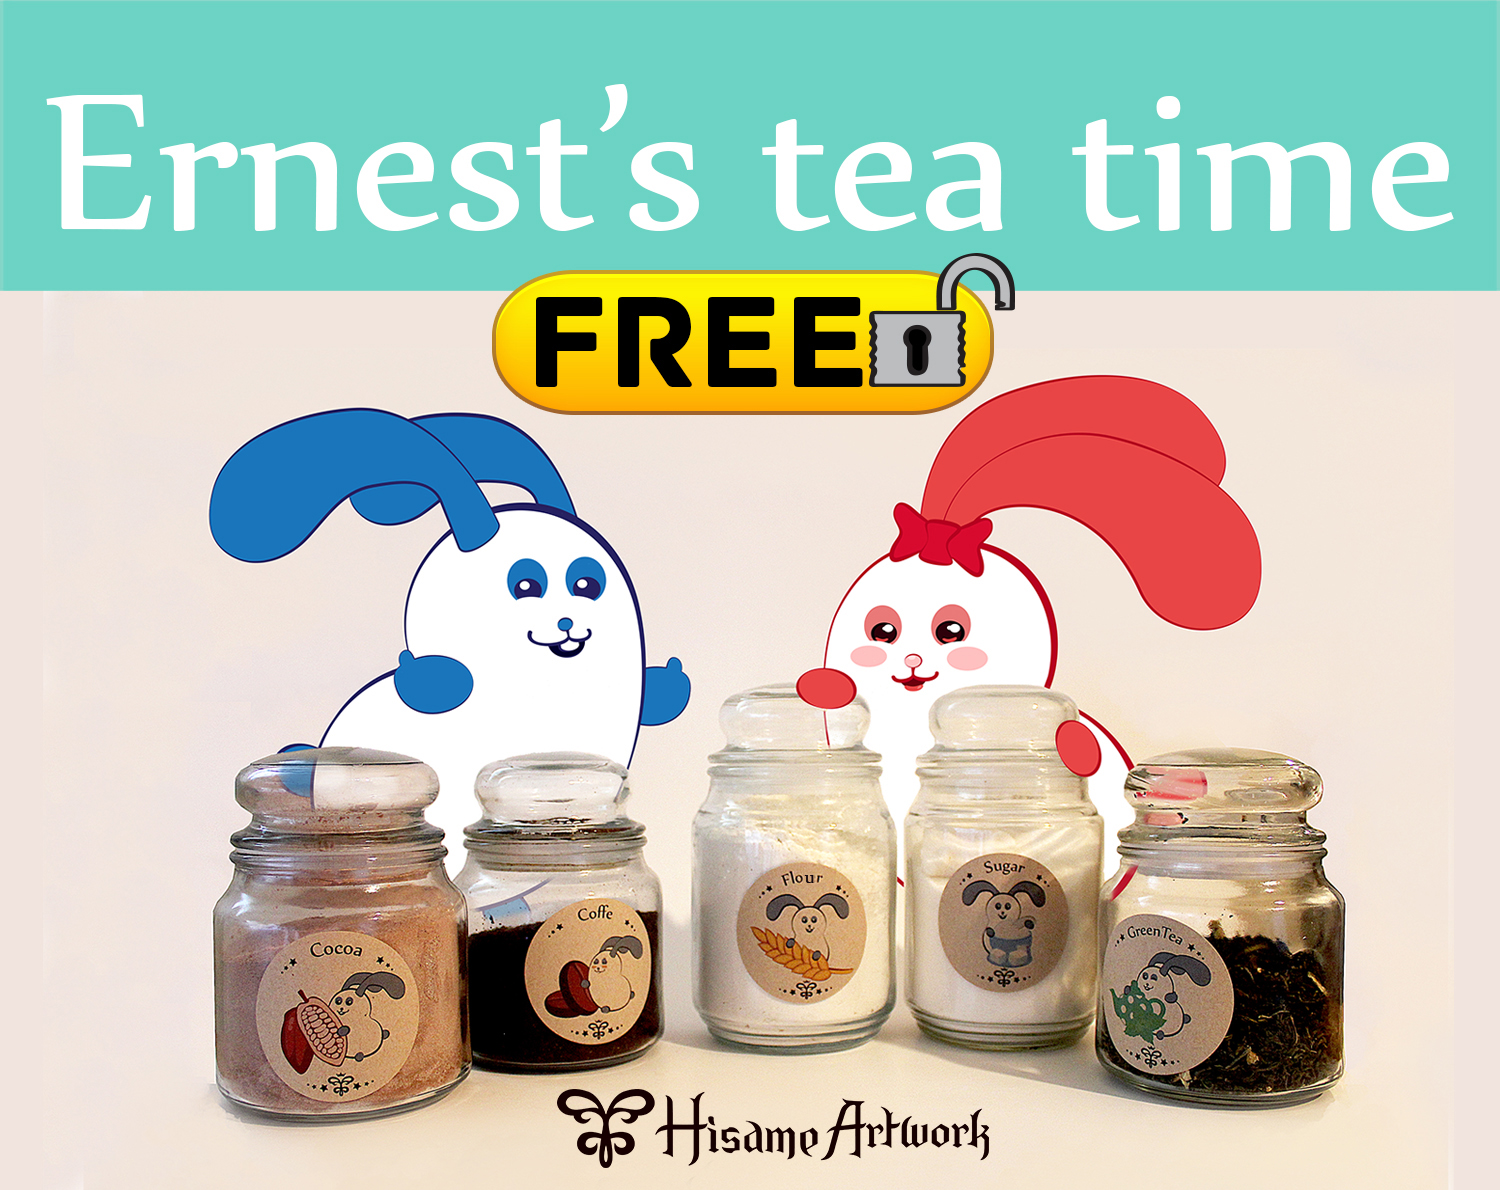 Ernest's tea time stickers